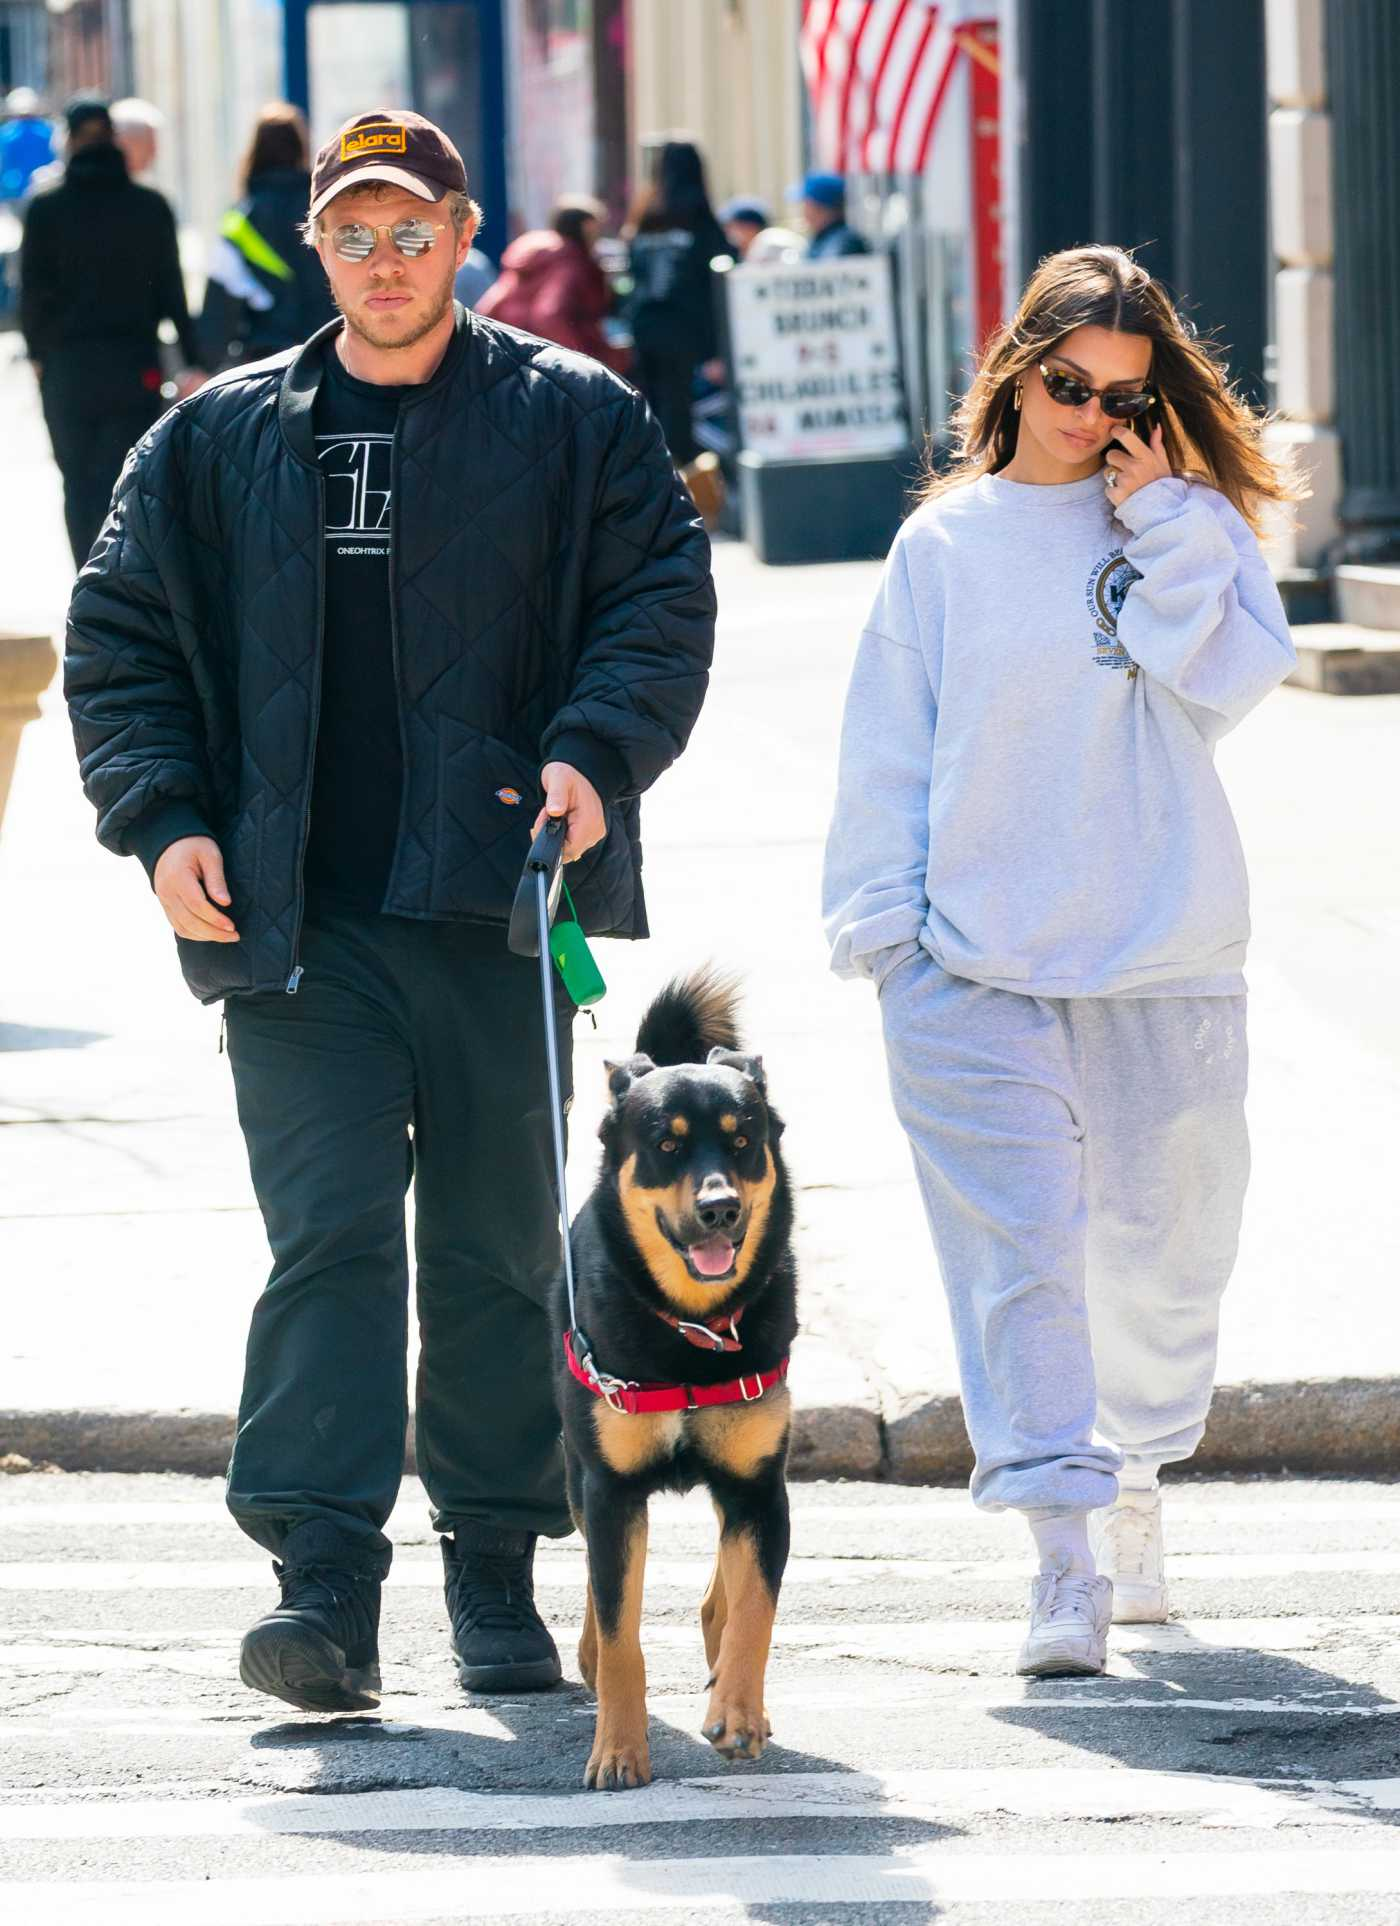 Emily Ratajkowski in a Gray Sweatsuit Walks Her Dog Colombo Out with Sebastian Bear-McClard in New York City 03/16/2020